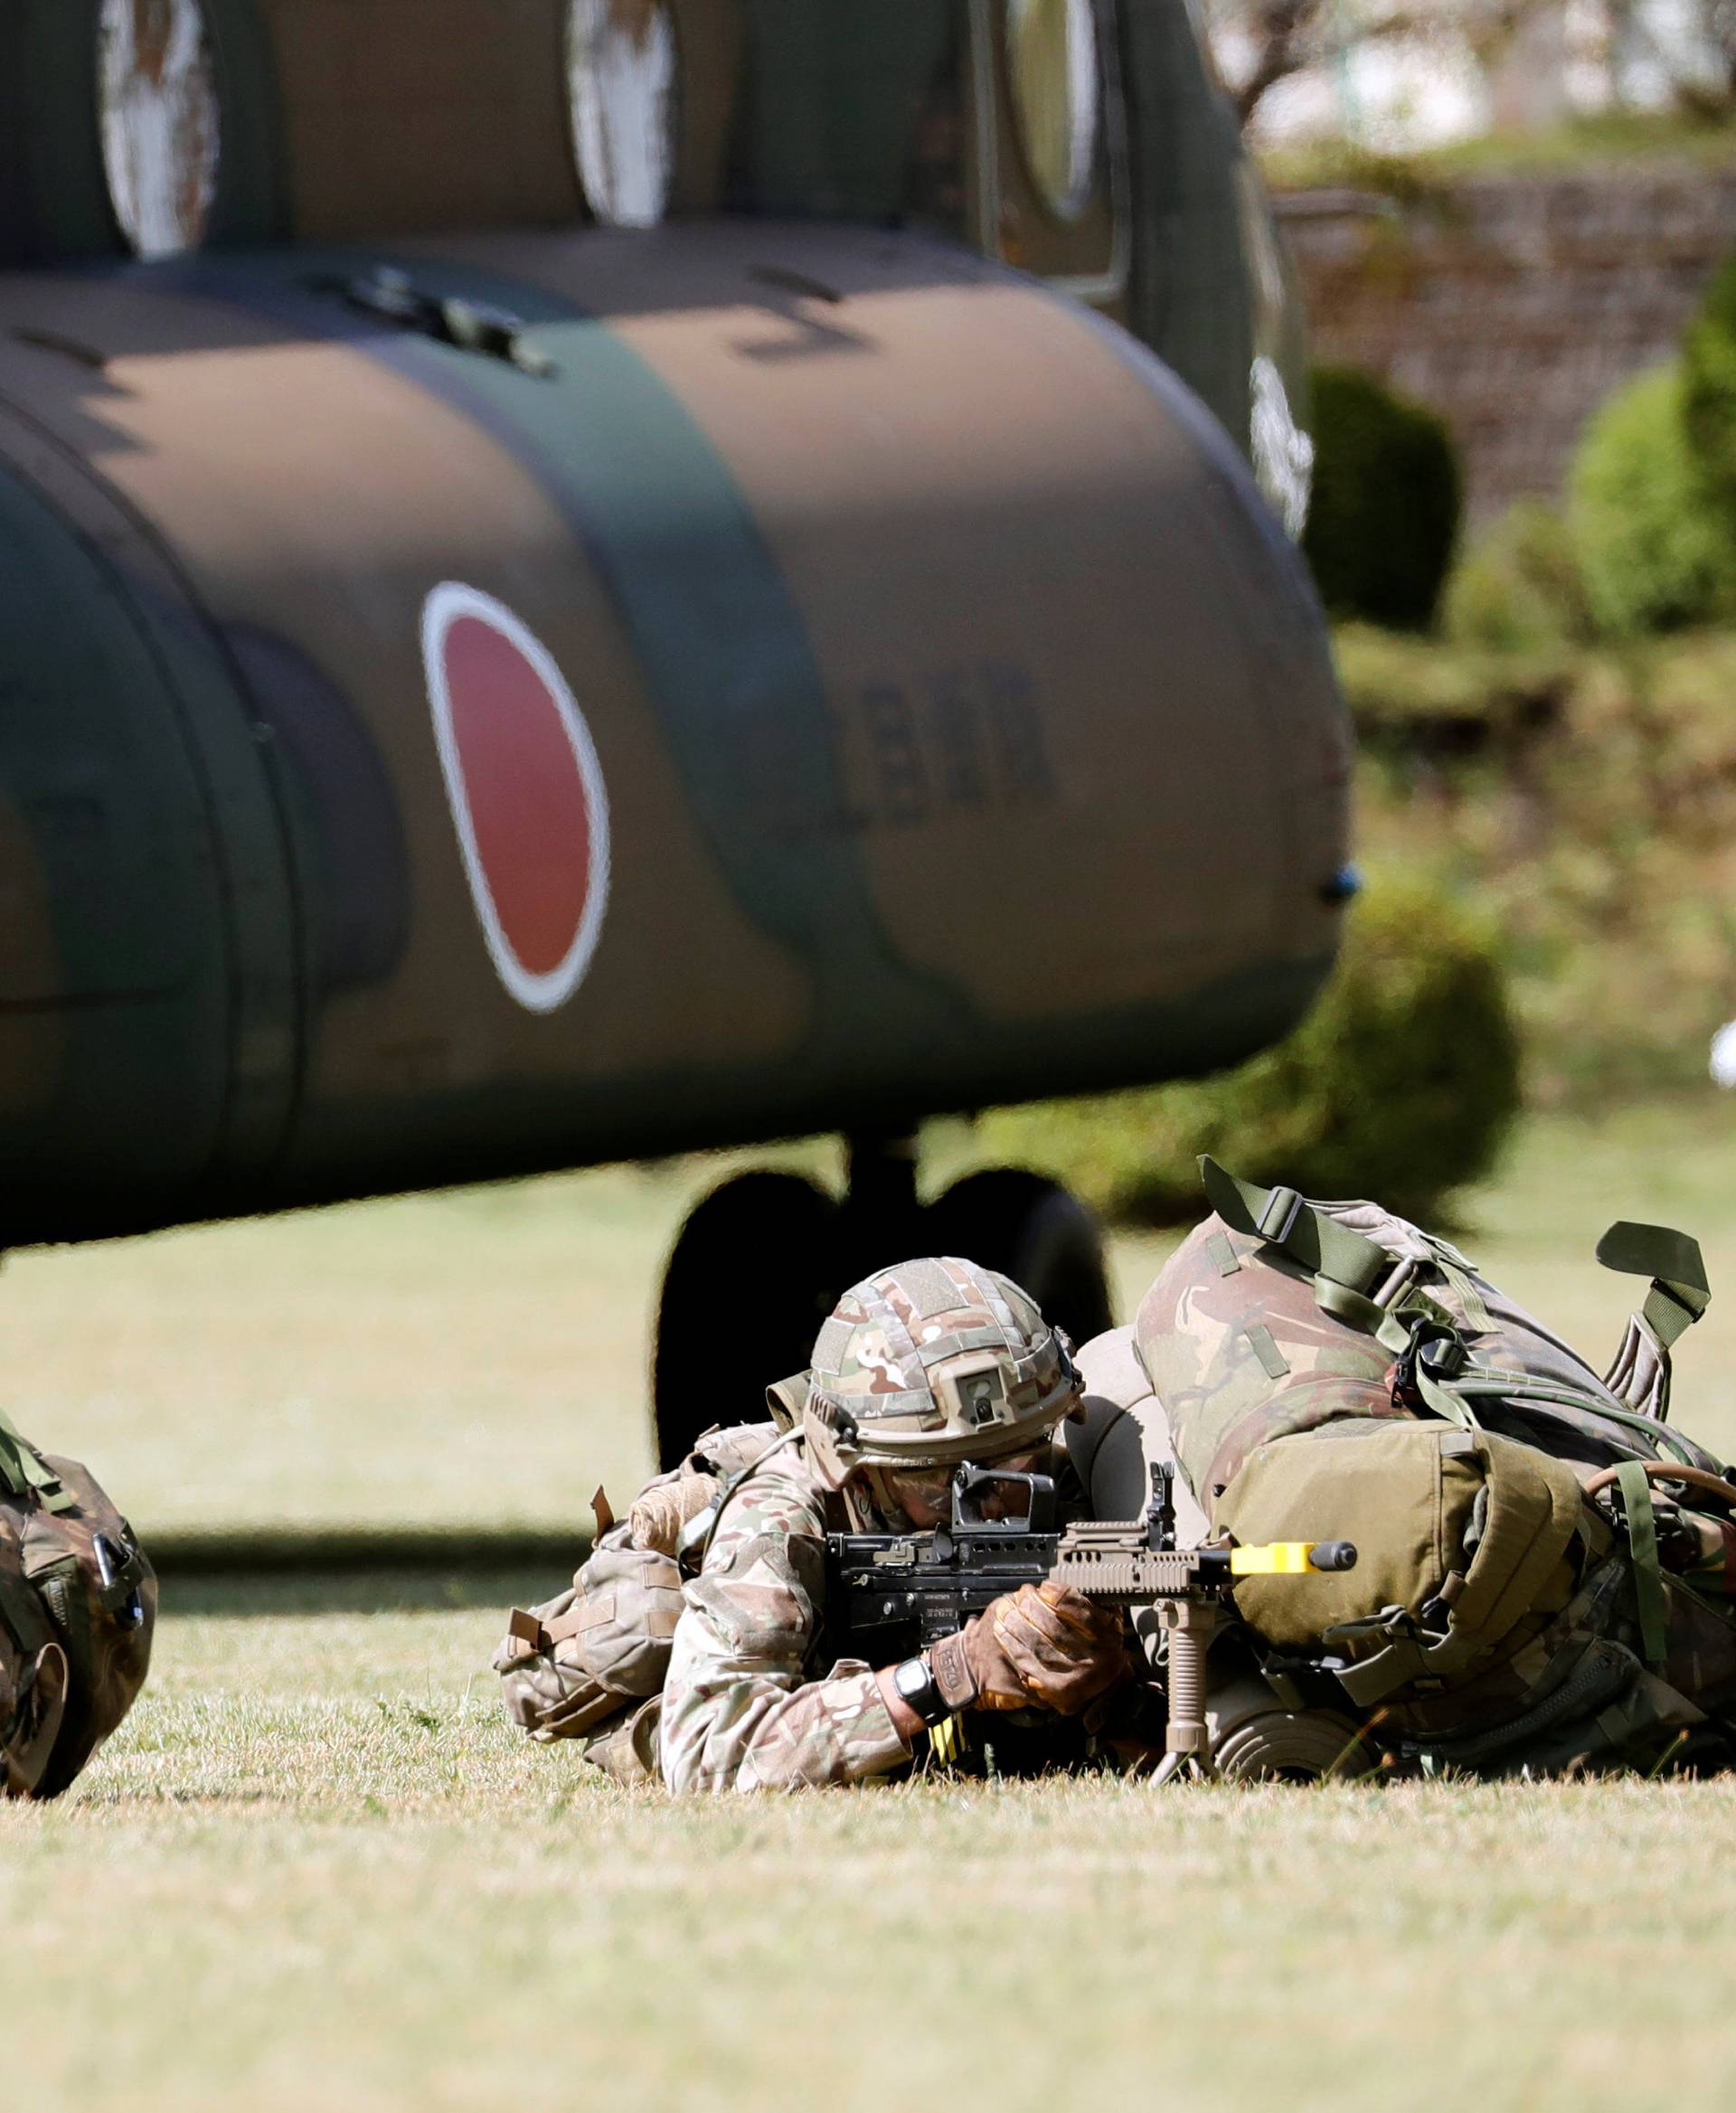 Members of the British Army take part in their first joint exercise with JGSDF at the JGSDF Camp Fuji in Oyama town